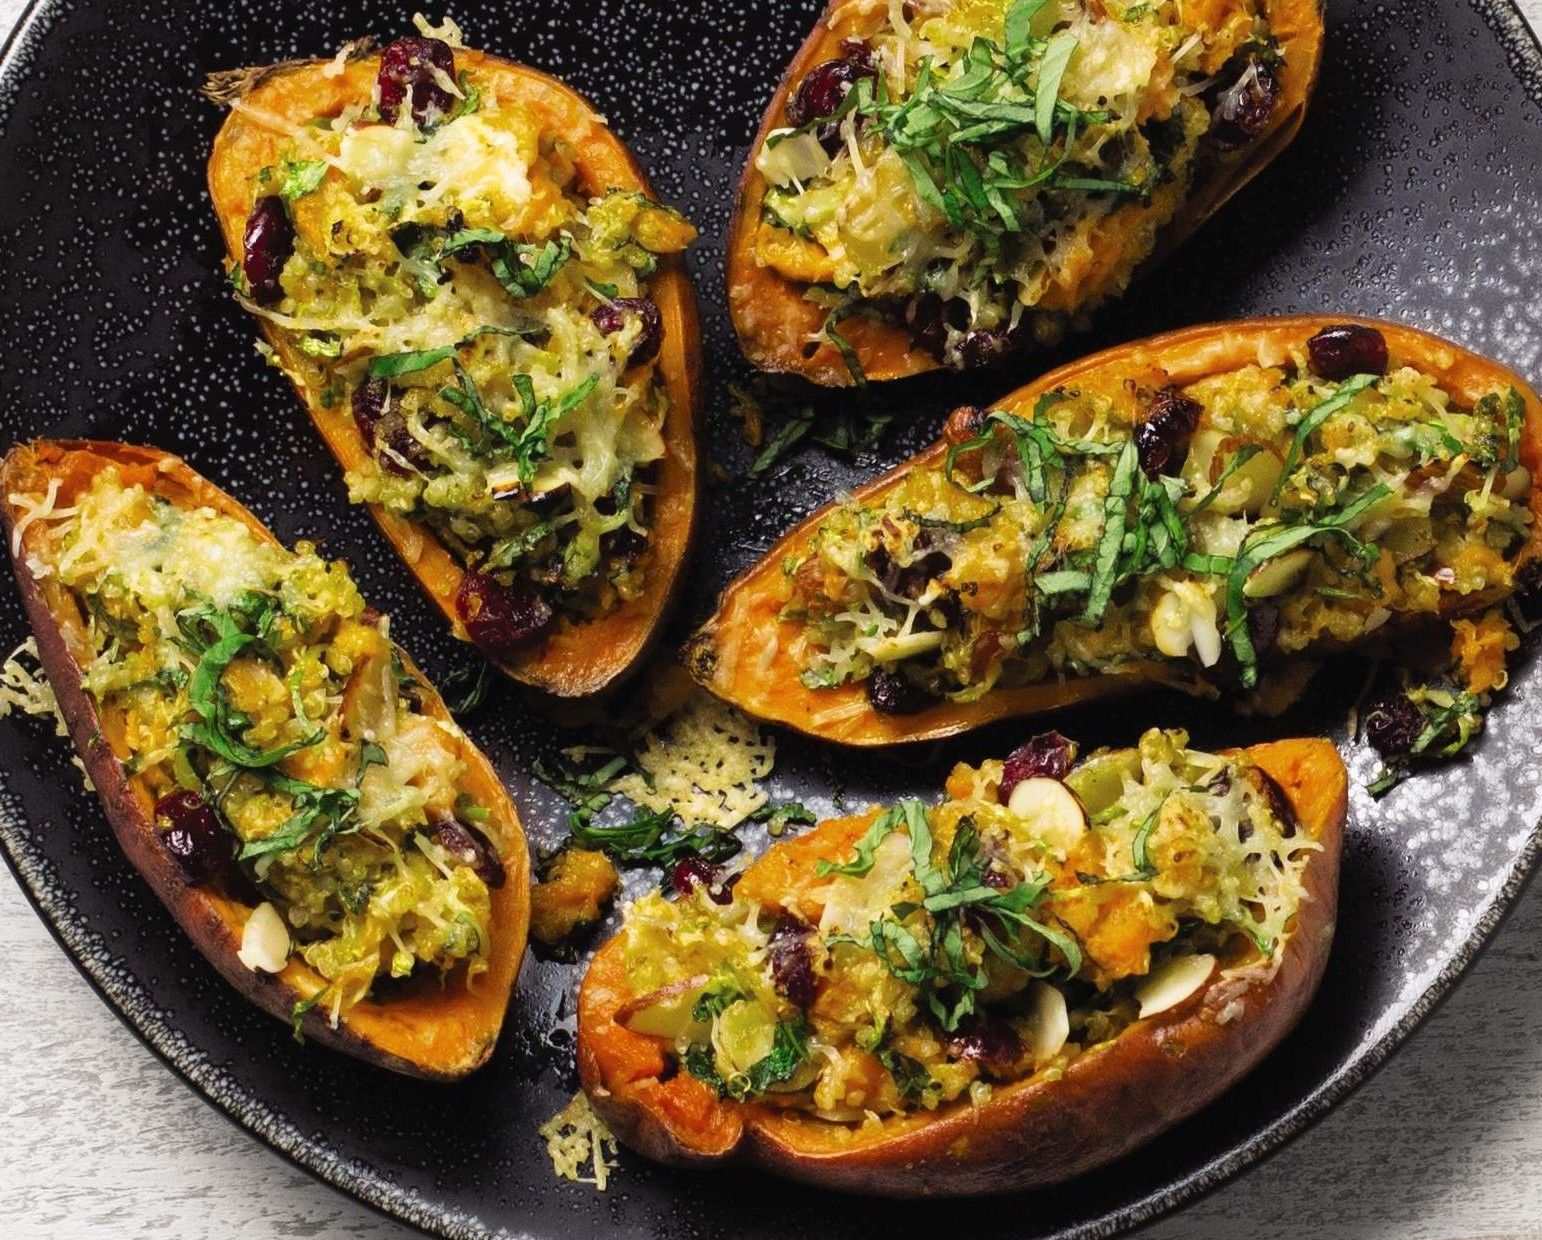 Sweet potatoes stuffed with quinoa and veggies.